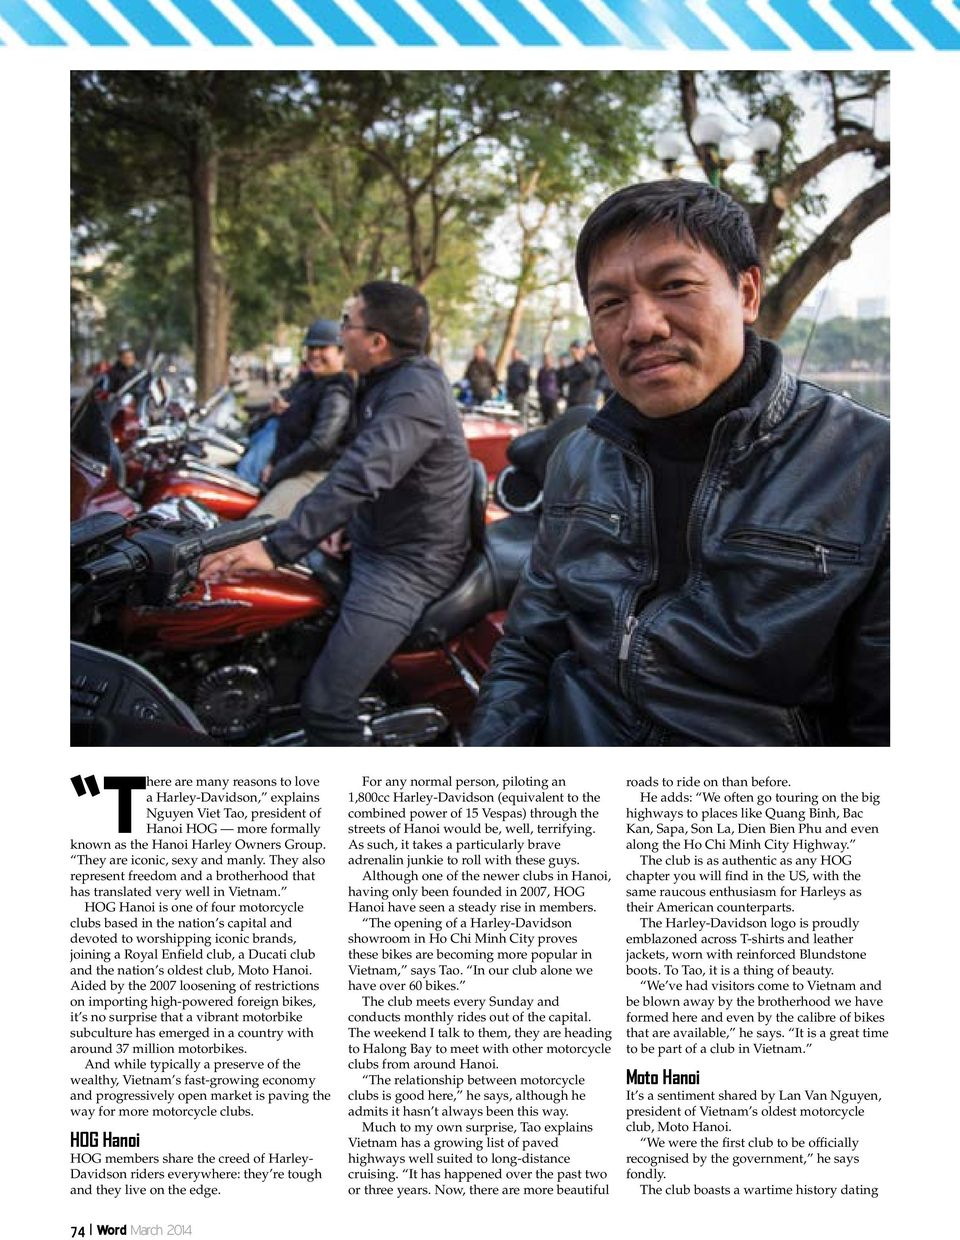 HOG Hanoi is one of four motorcycle clubs based in the nation s capital and devoted to worshipping iconic brands, joining a Royal Enfield club, a Ducati club and the nation s oldest club, Moto Hanoi.